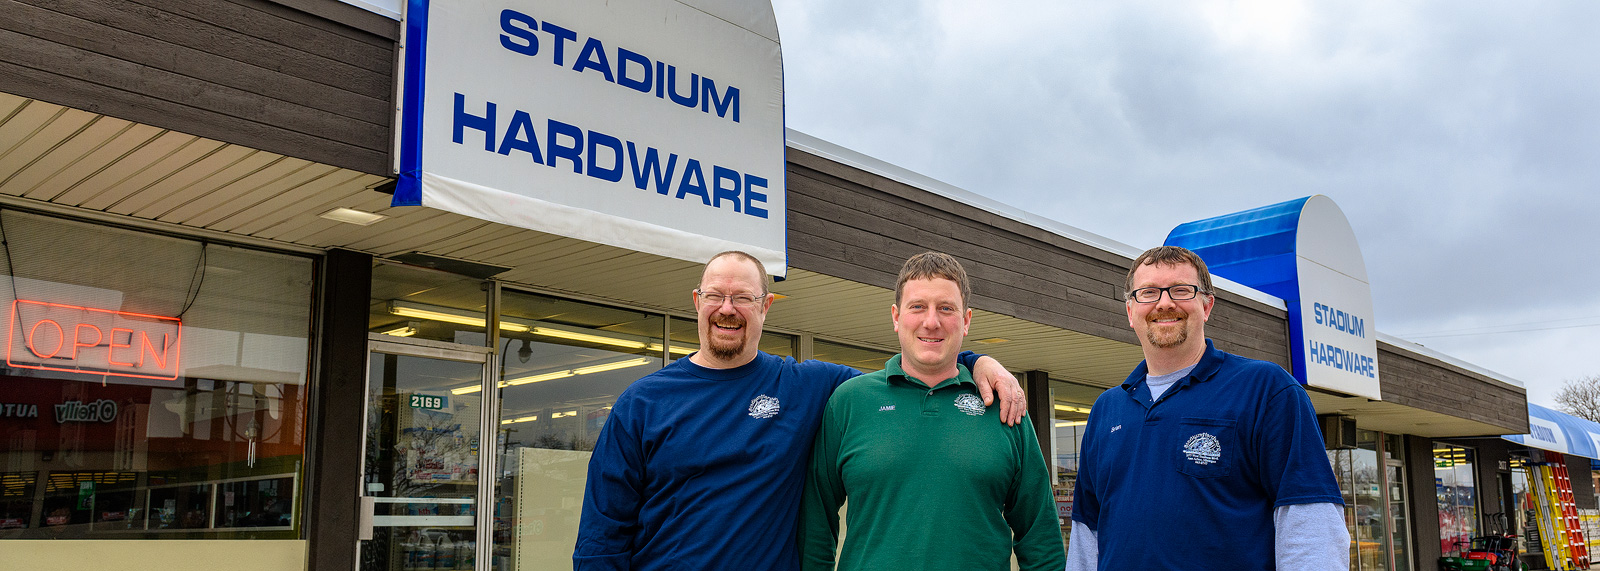 Stadium Hardware owners Skip Hackbarth, Jamie Brustad and Brian Bennink <span class='image-credits'>Doug Coombe</span>